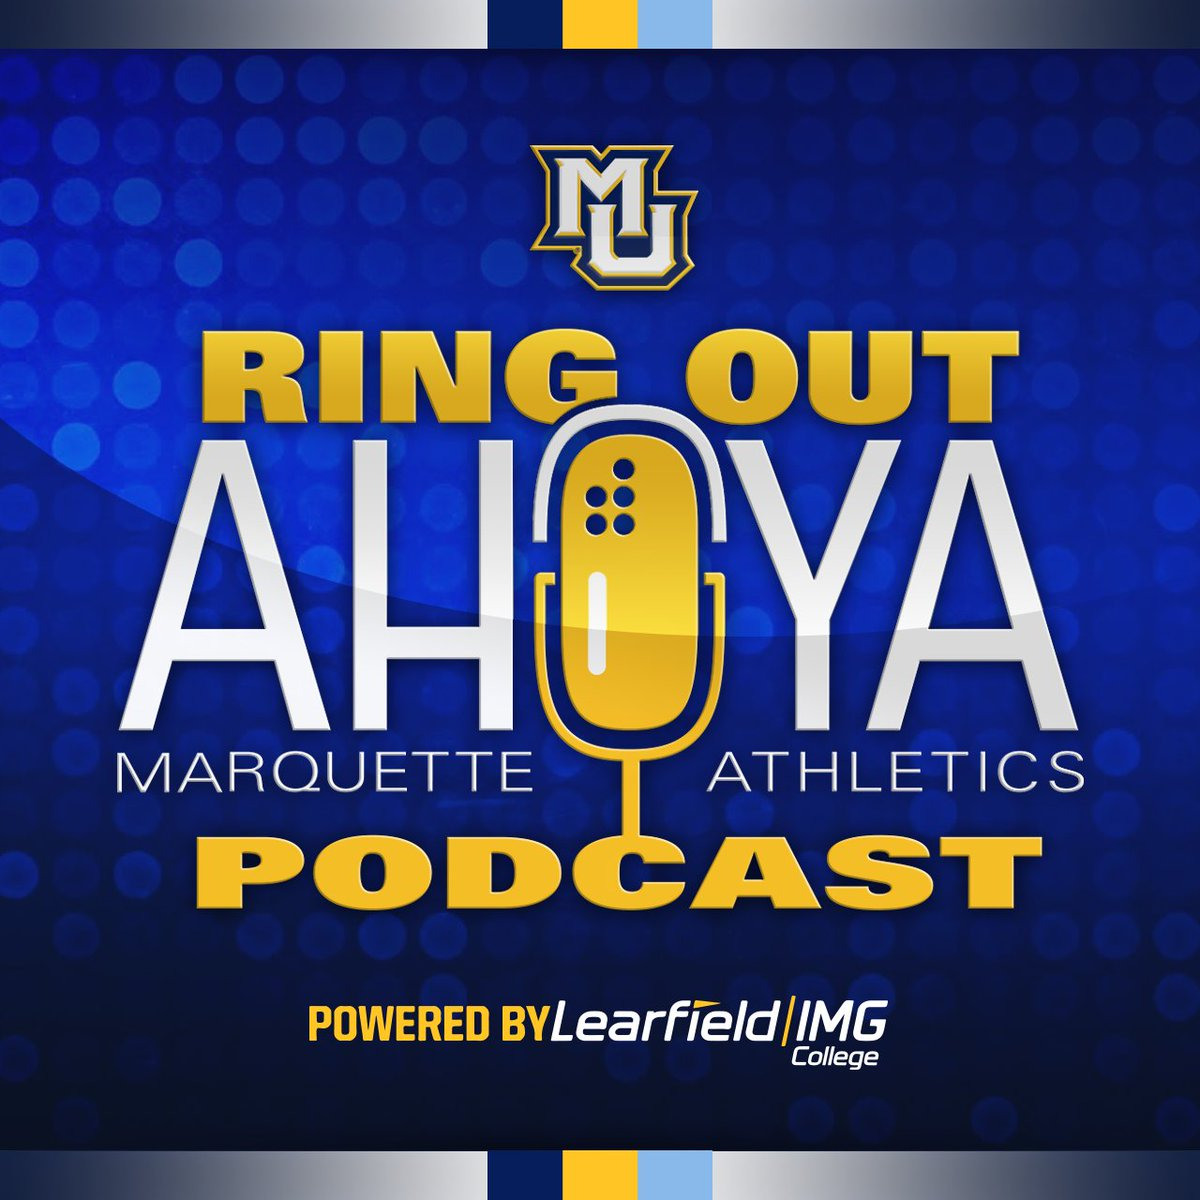 #mubb Ring Out Ahoya Podcast | @DienerTravis with some breaking news, talks about when he knew @GoldenEaglesTBT was going to win @thetournament and whats next. LISTEN: bit.ly/2Lau6is